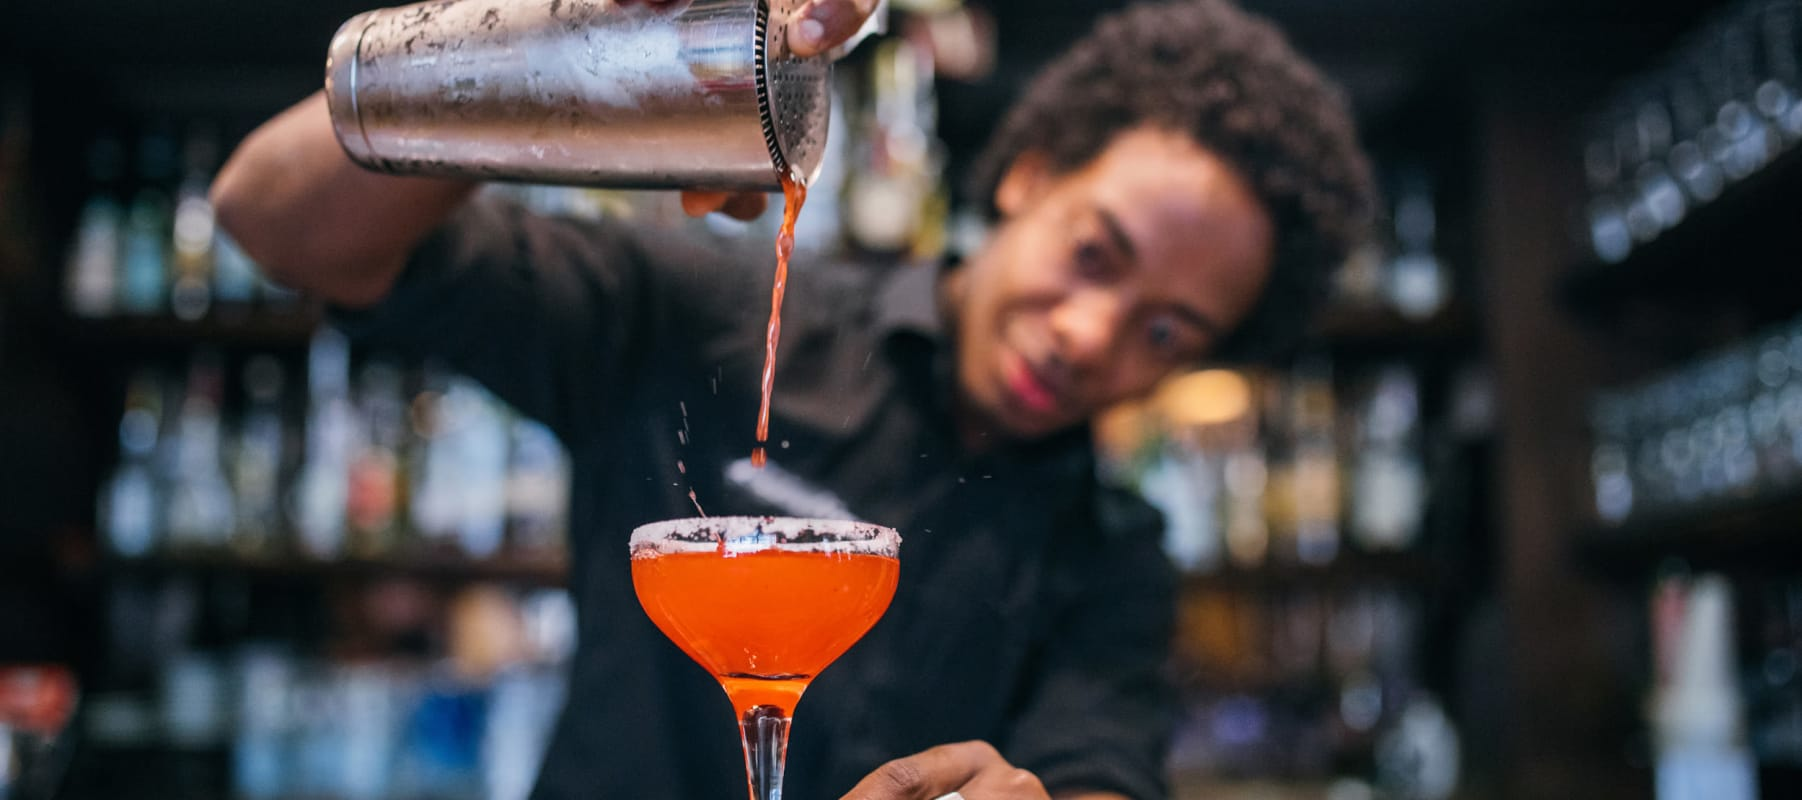 Bartender pouring a mouth-watering cocktail at a bar near 17th Street Lofts in Atlanta, Georgia